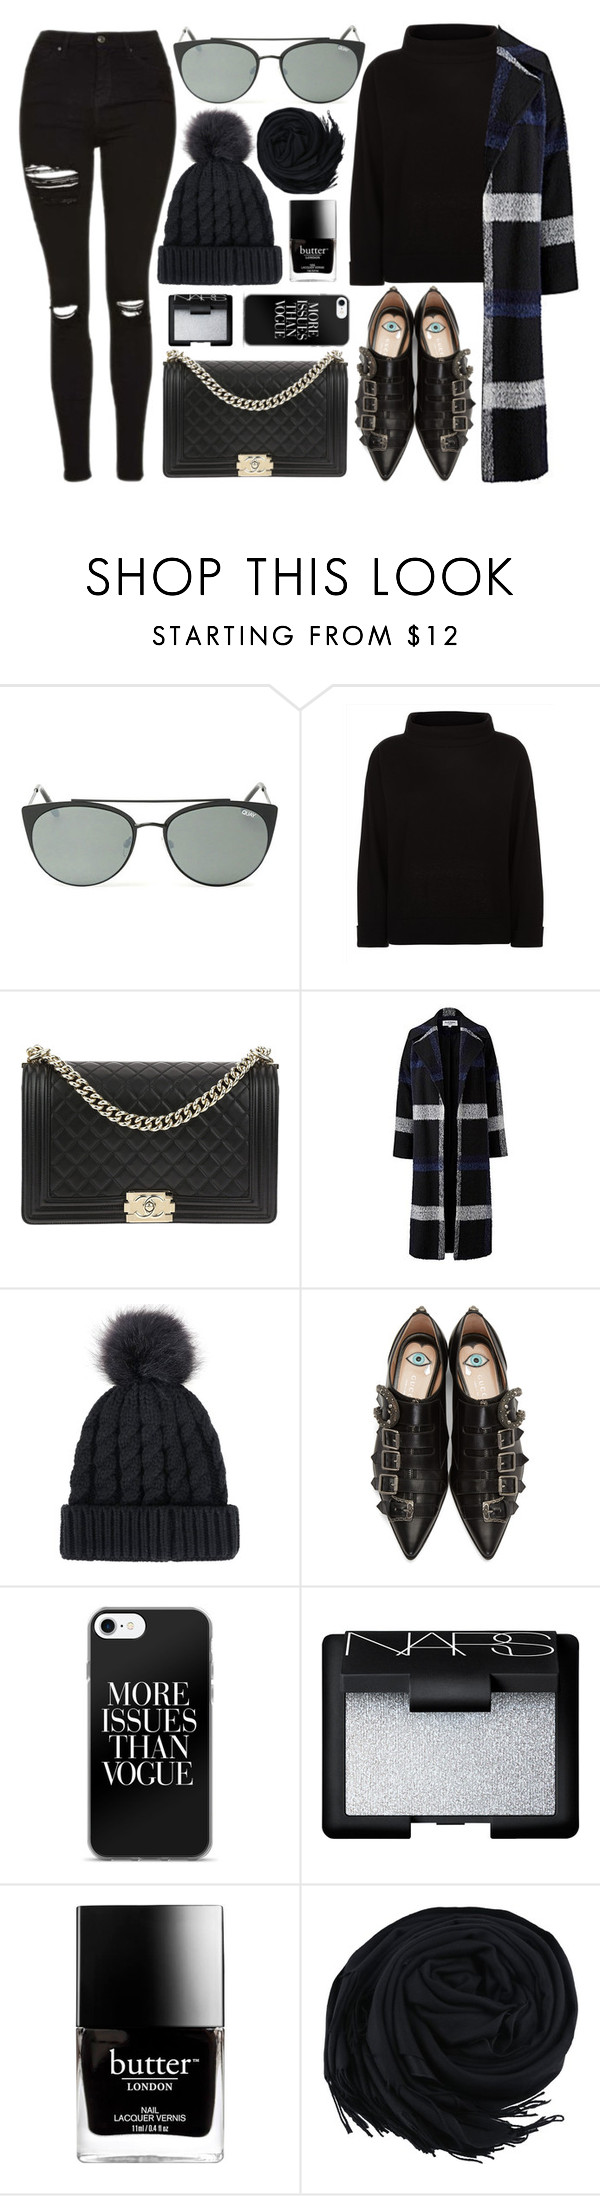 """""""Casual Day"""" by smartbuyglasses-uk ❤ liked on Polyvore featuring Quay, Jaeger, Chanel, Helene Berman, Gucci, NARS Cosmetics, Butter London, casual, black and everydayoutfit"""